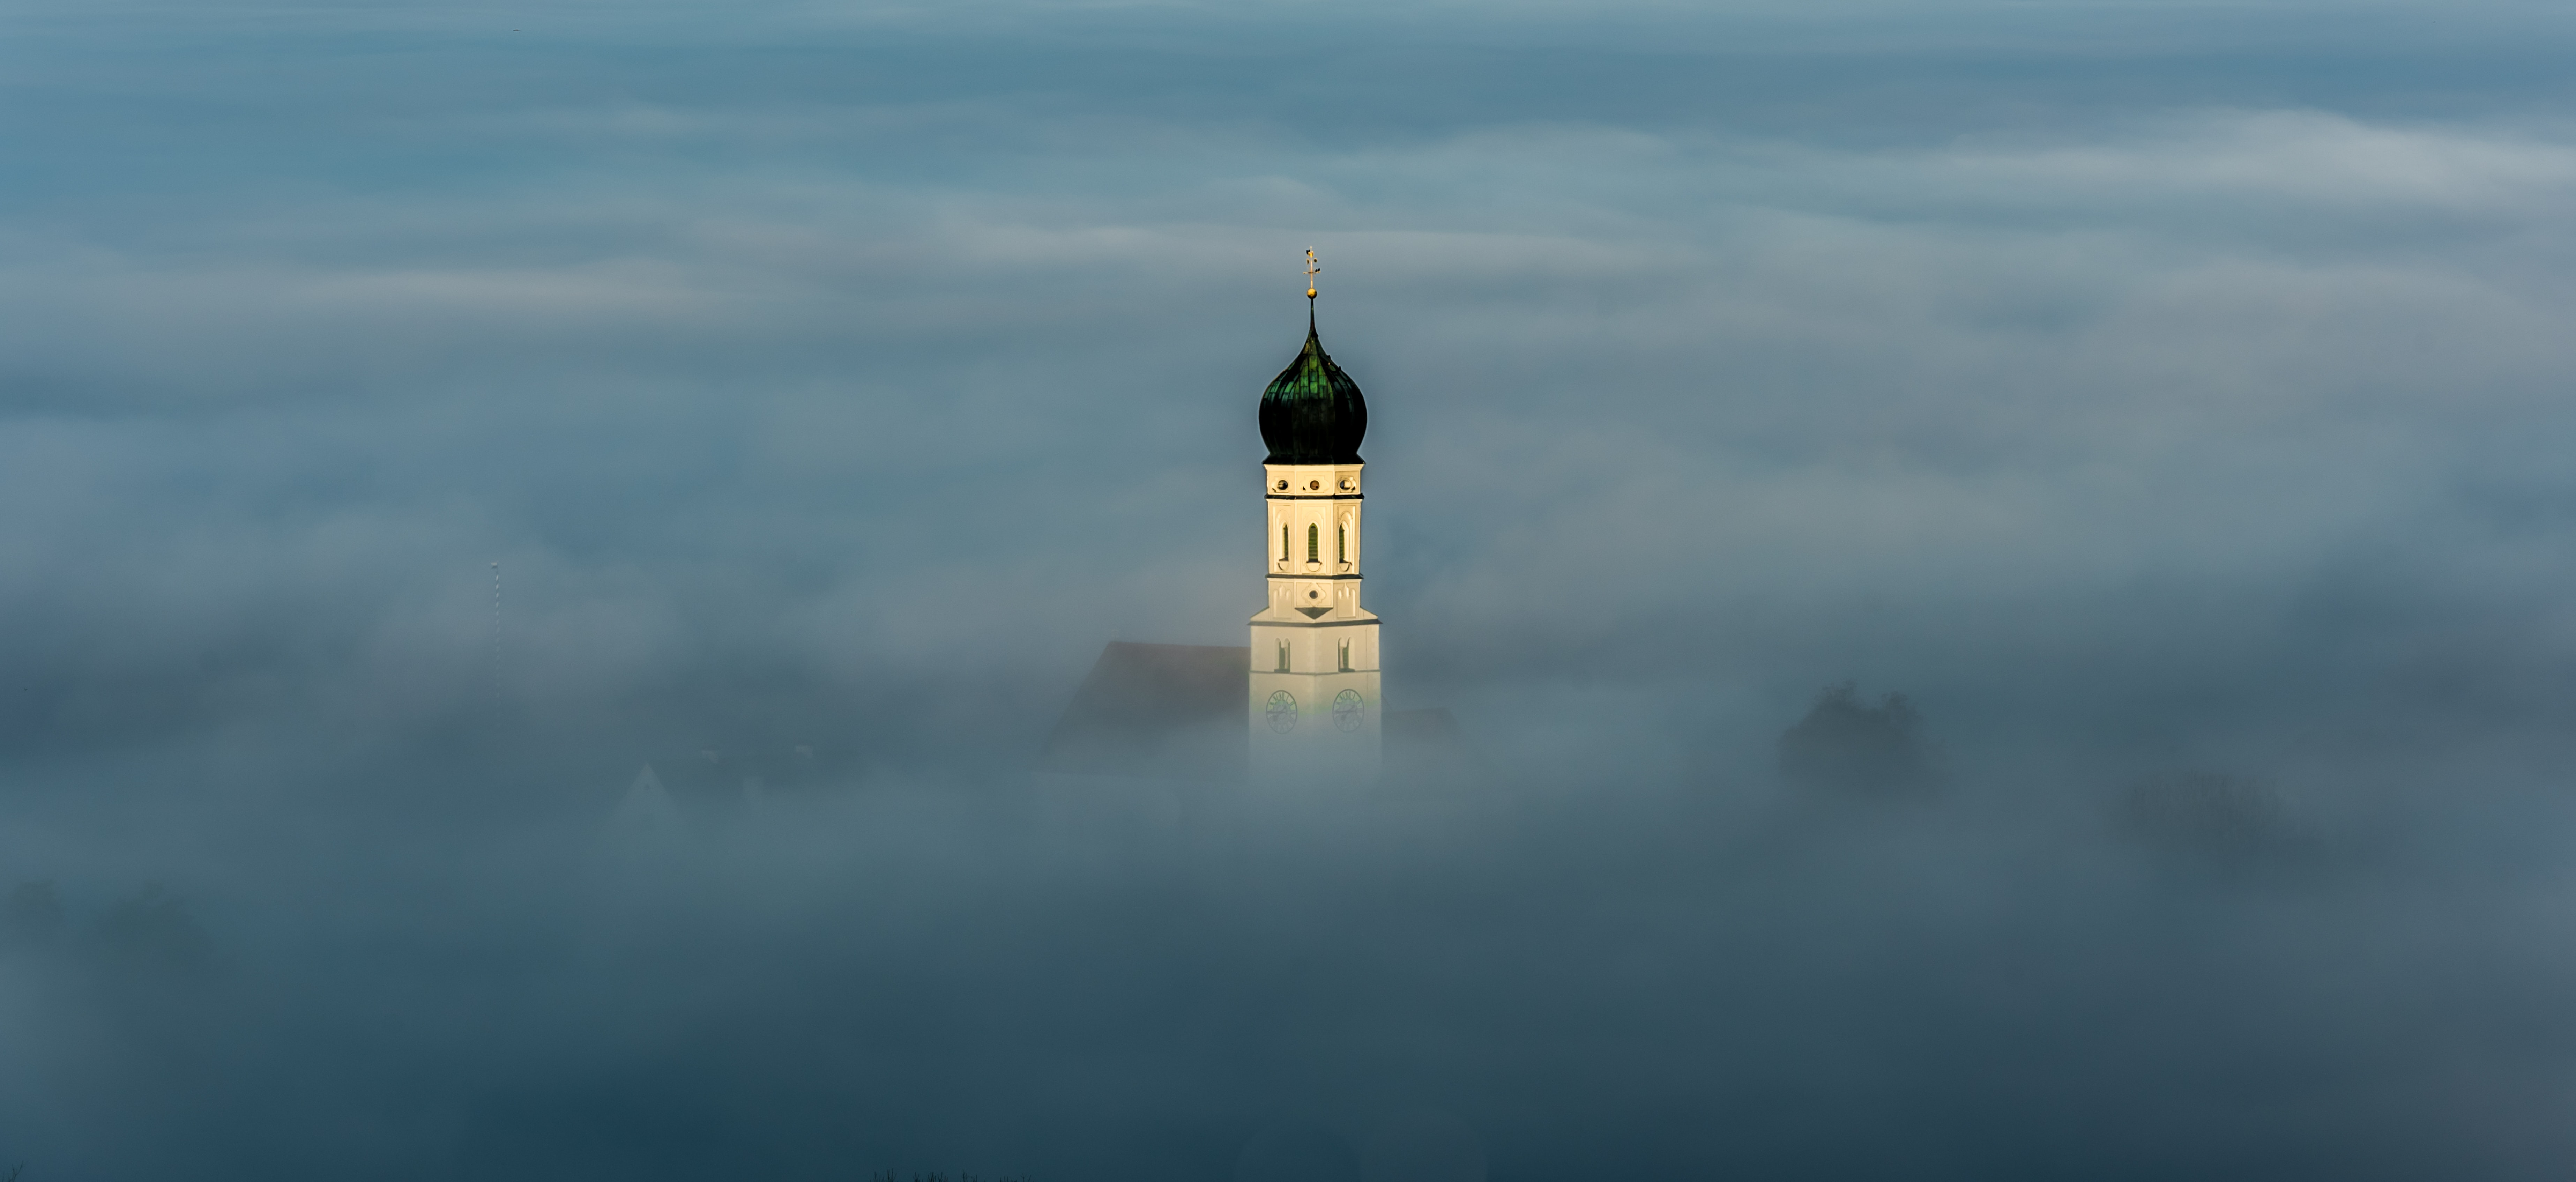 Top of a historic building in Bavaria breaks through the clouds